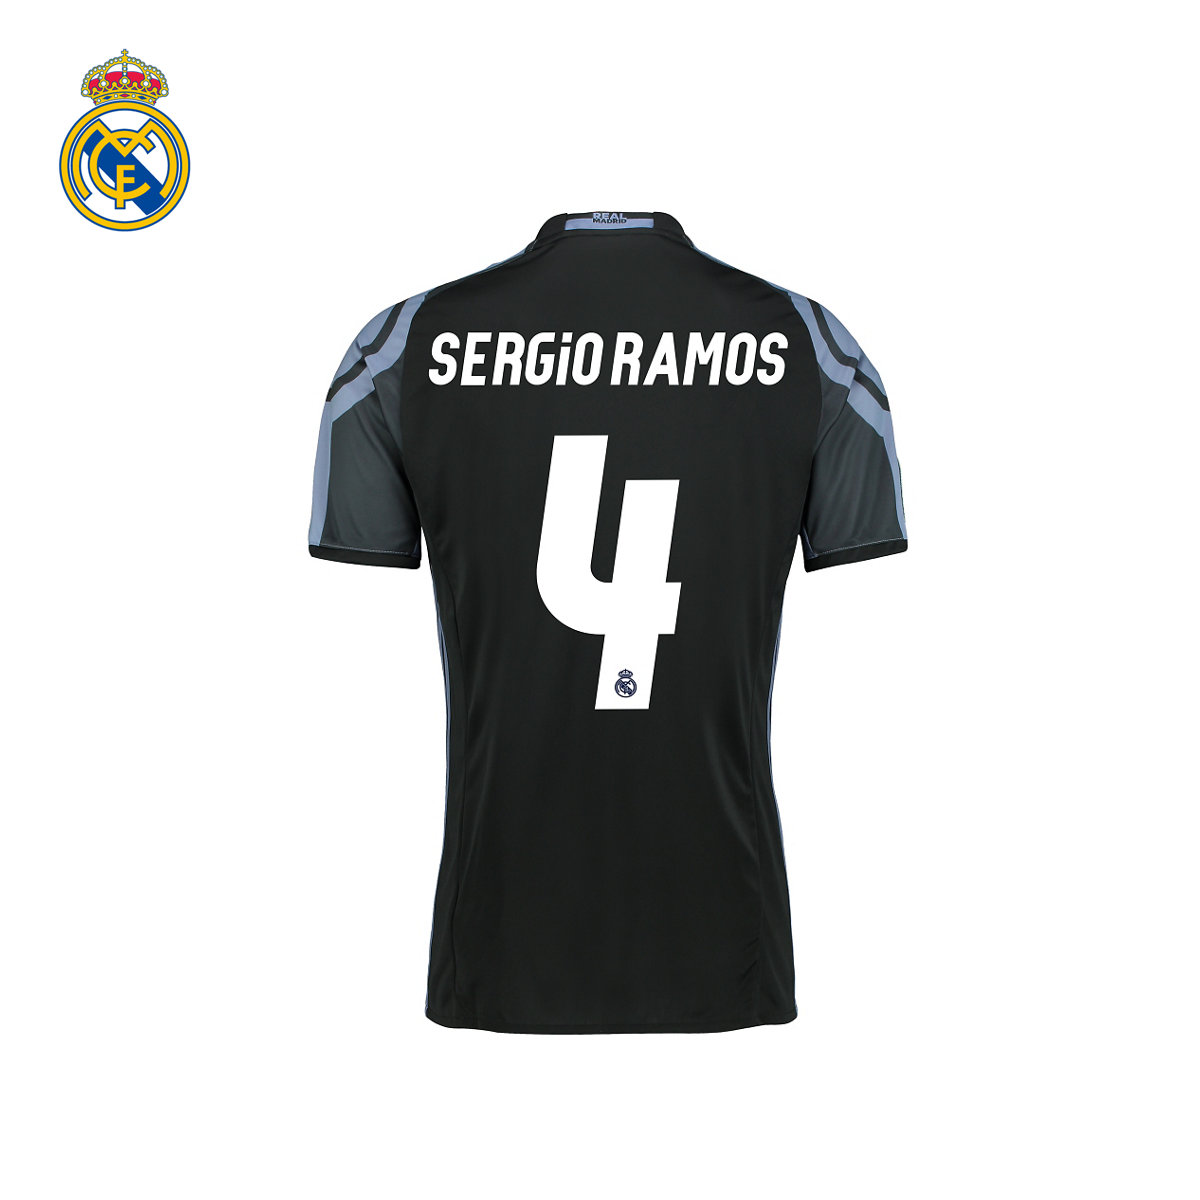 [Woman] real madrid real madrid ramos ramos jersey short sleeve jersey 16/17 season of the third set of 4